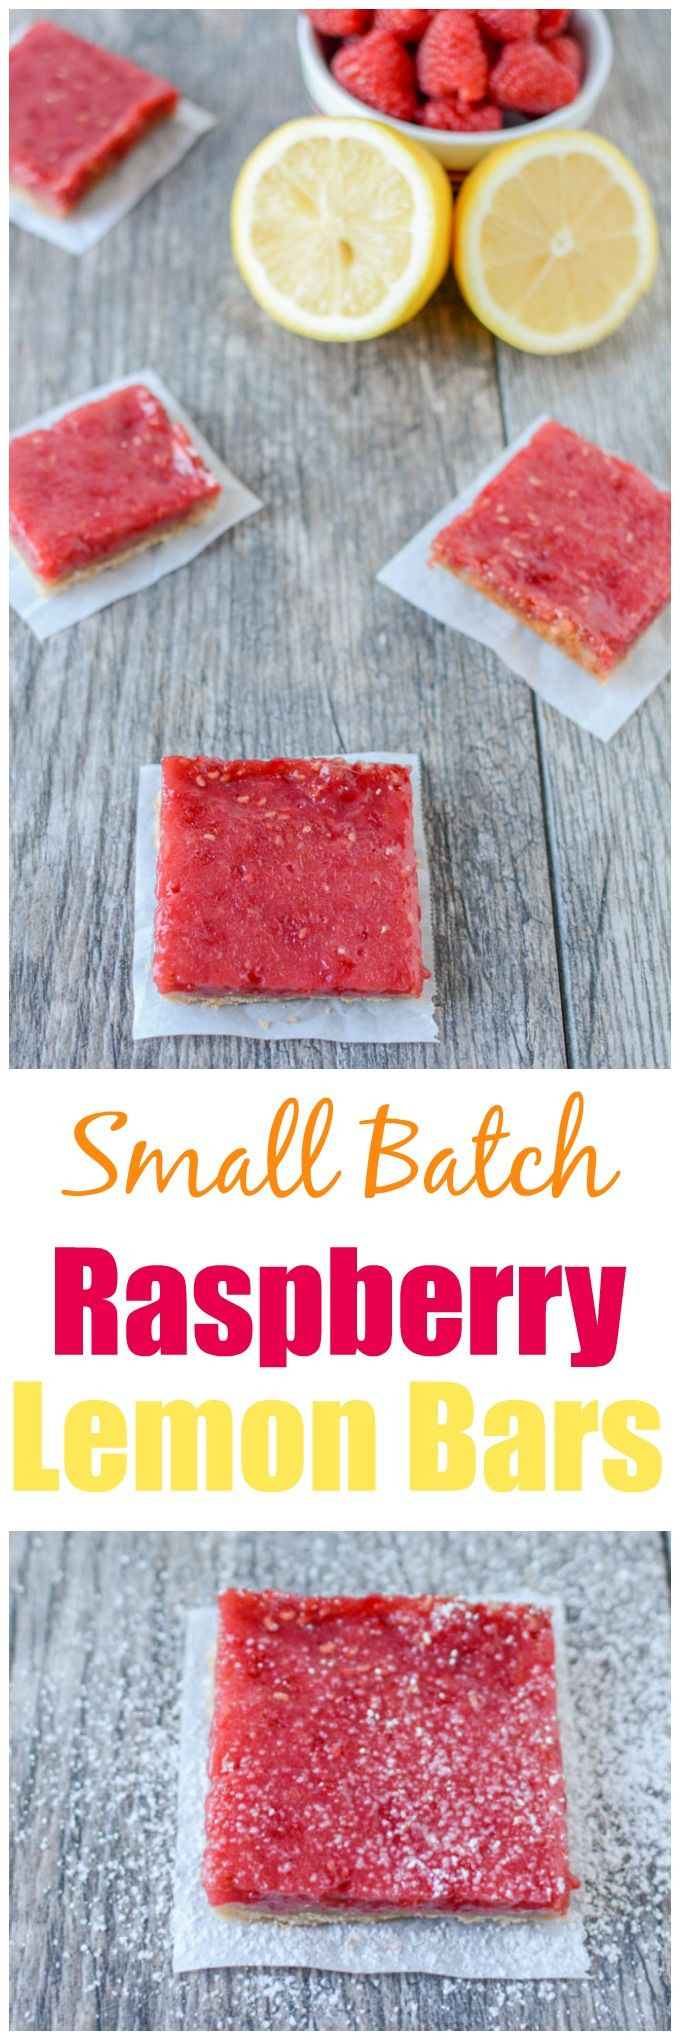 These Small Batch Raspberry Lemon Bars are the perfect dessert. Bursting with flavor, they're easy to make and a small batch means there's just enough to enjoy, without going overboard!